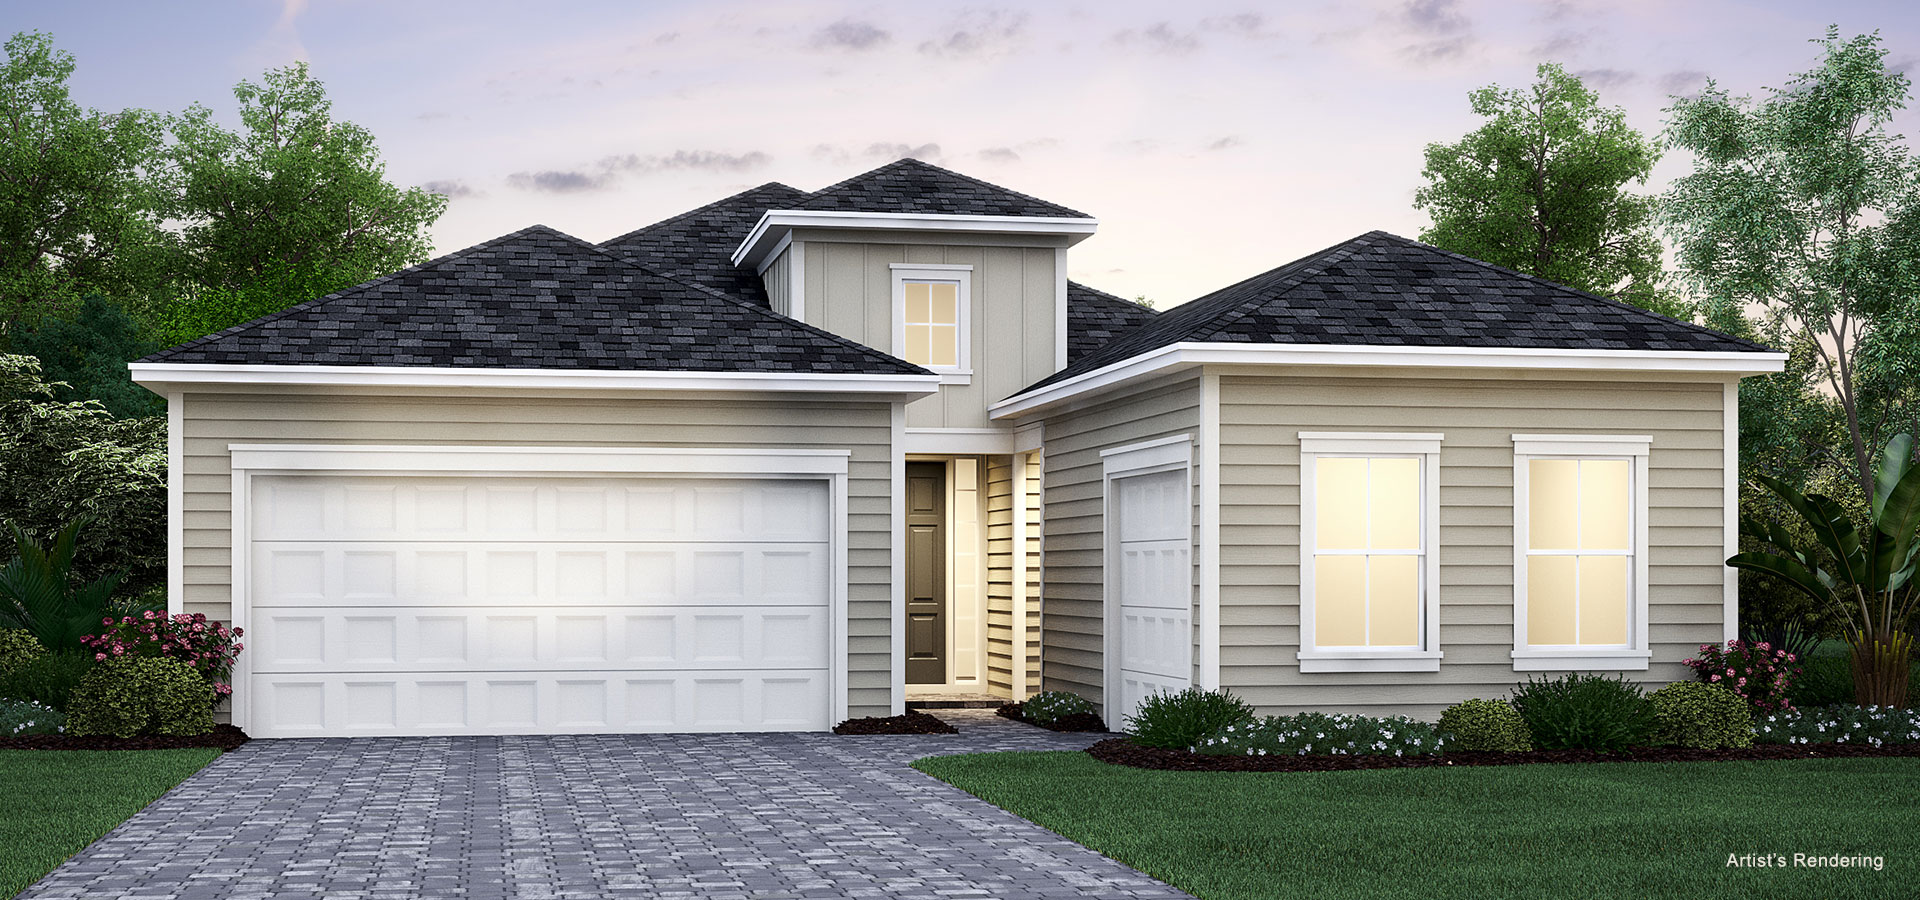 exterior rendering of independence model home at lakeview Tributary